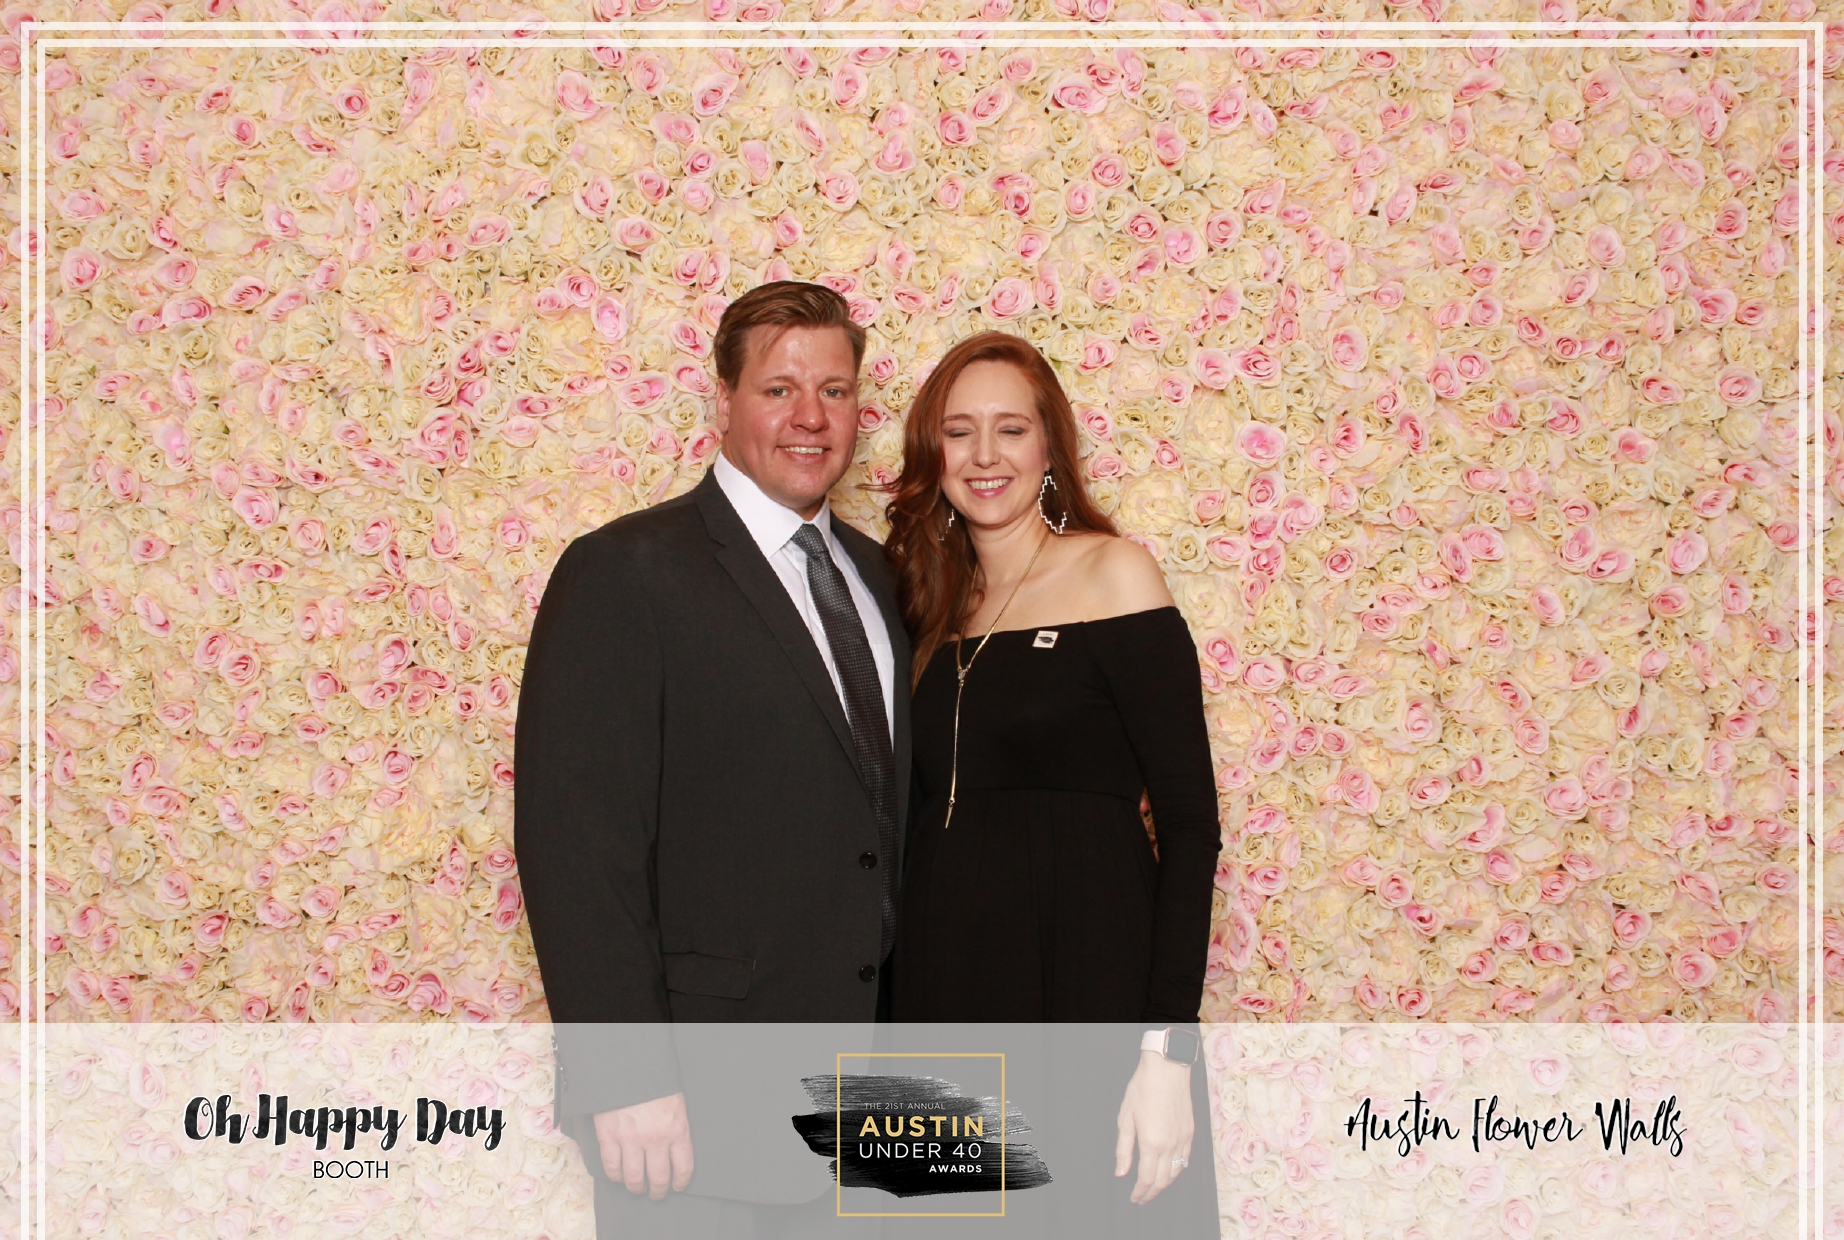 Oh Happy Day Booth - Austin Under 40-55.jpg